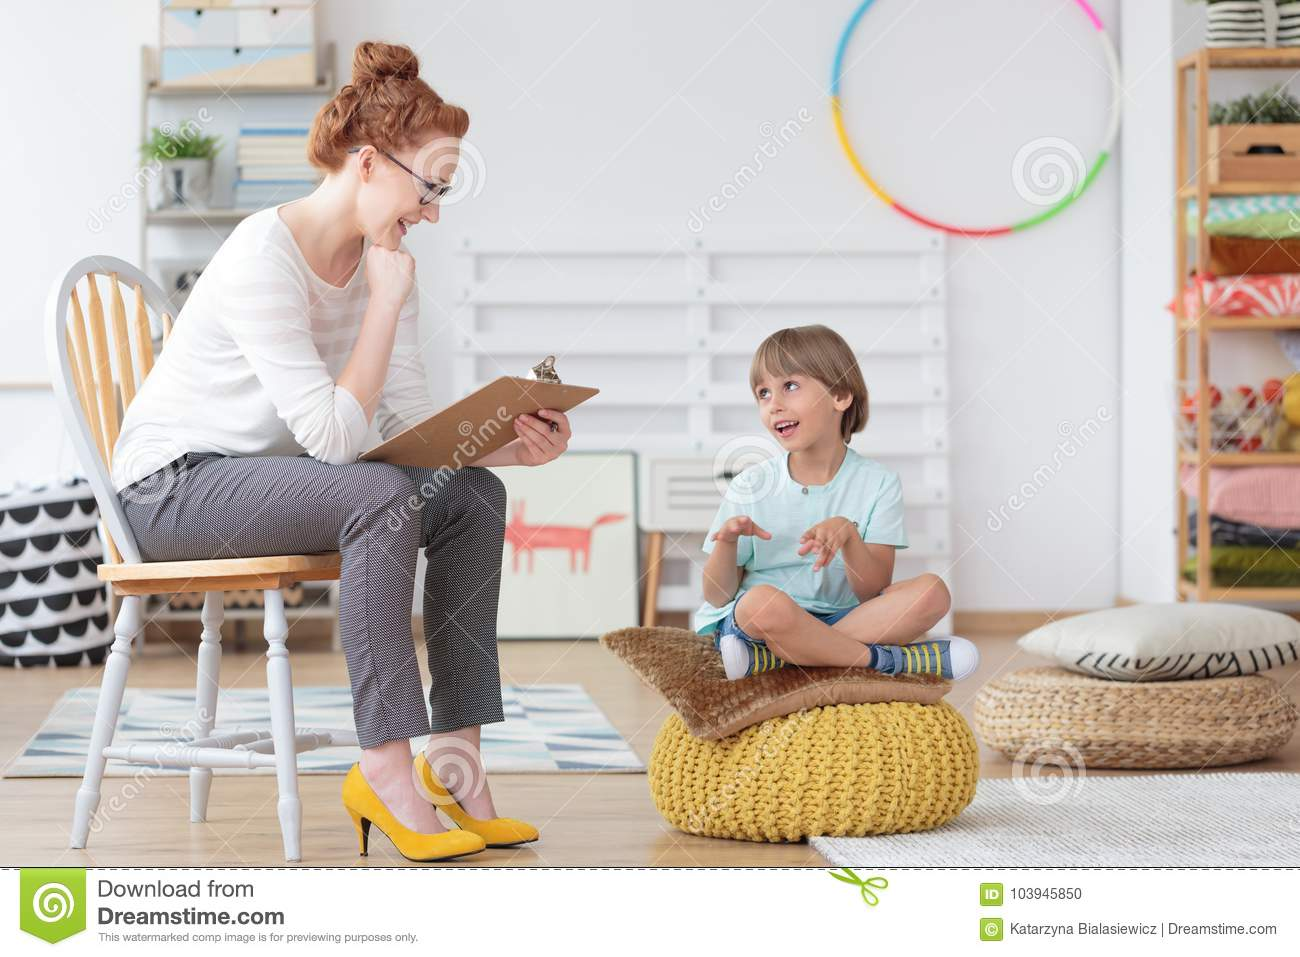 Child counselor during psychotherapy session